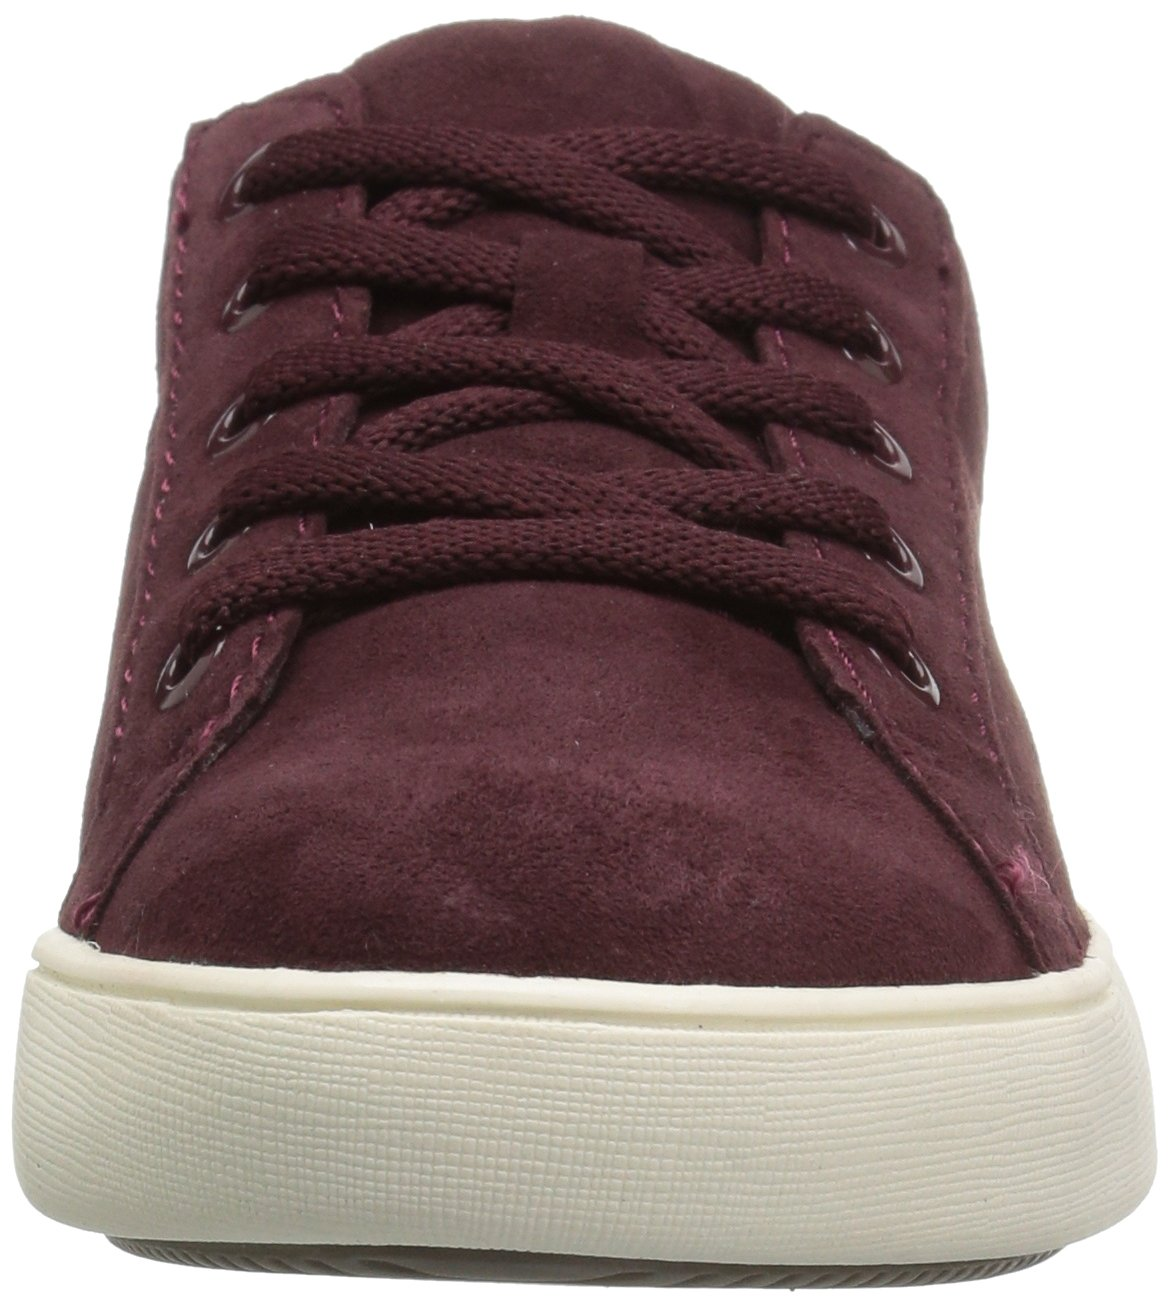 Naturalizer Women's Morrison Fashion Sneaker B06WD4XJ6N 7 B(M) US|Bordo